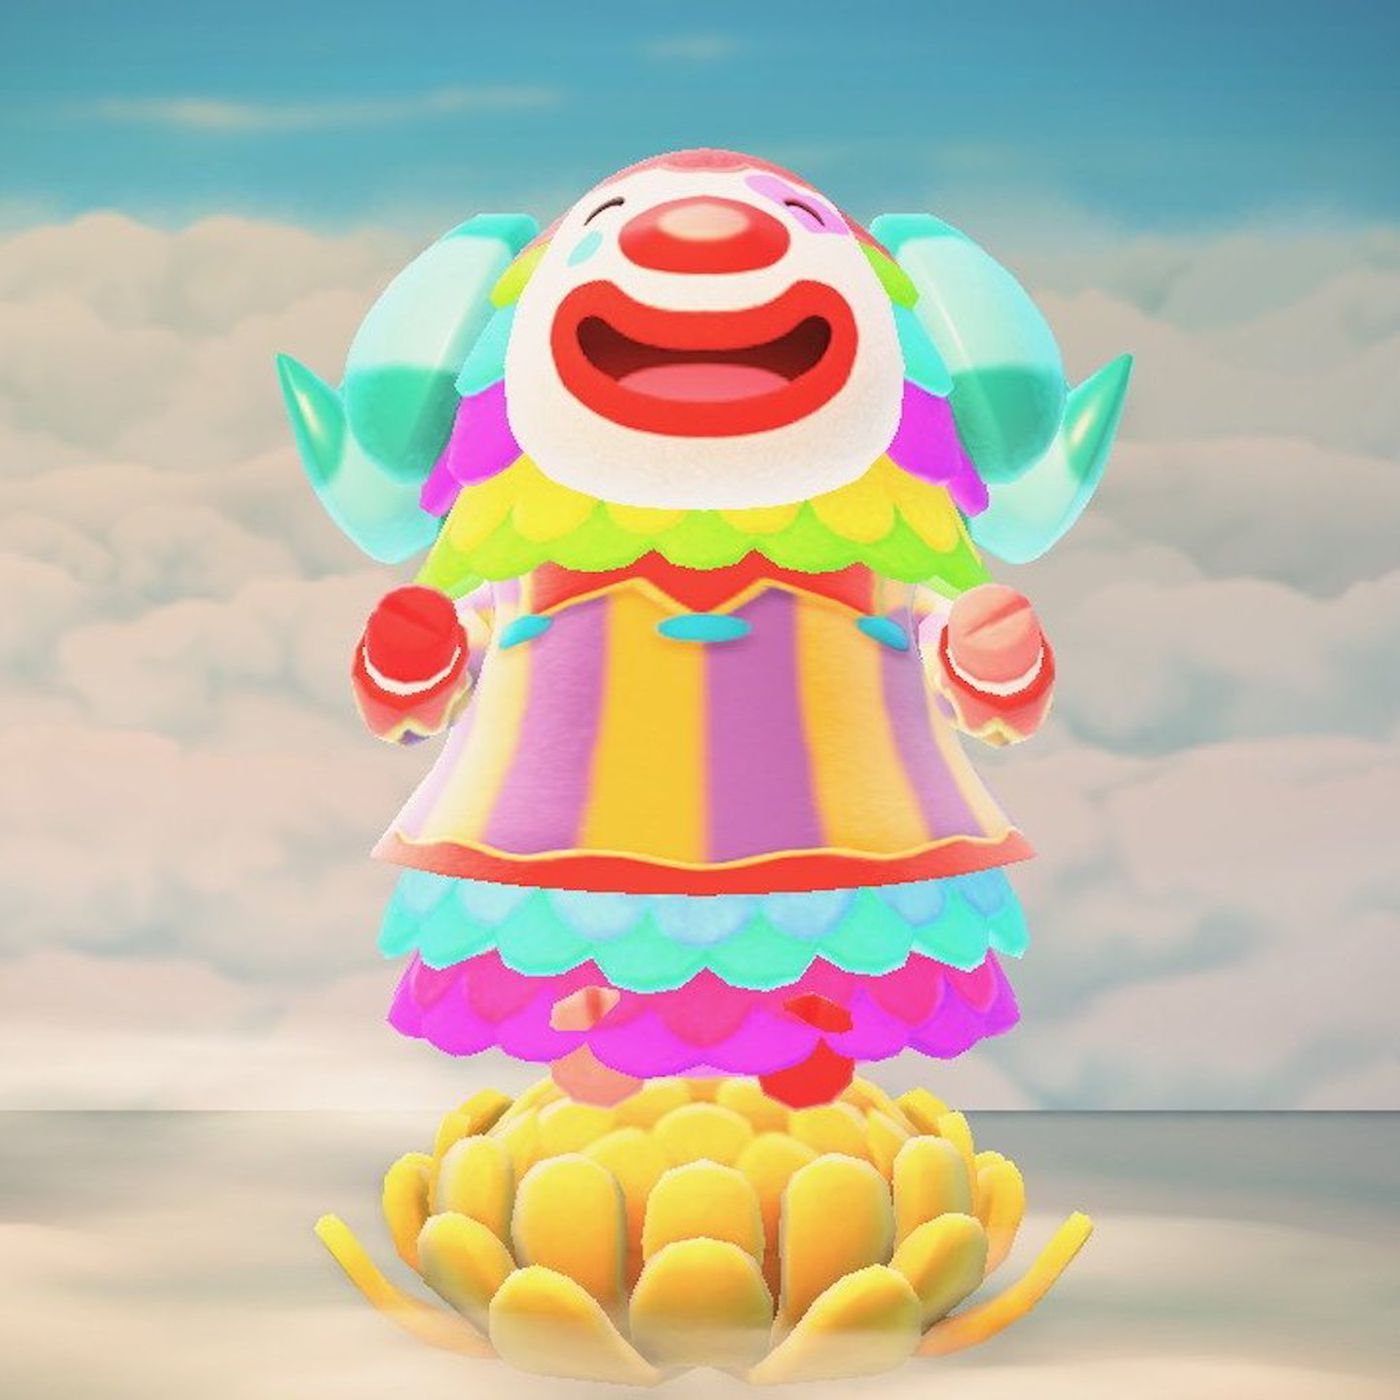 Animal Crossing: New Horizons fans defend Pietro the hated clown - Polygon